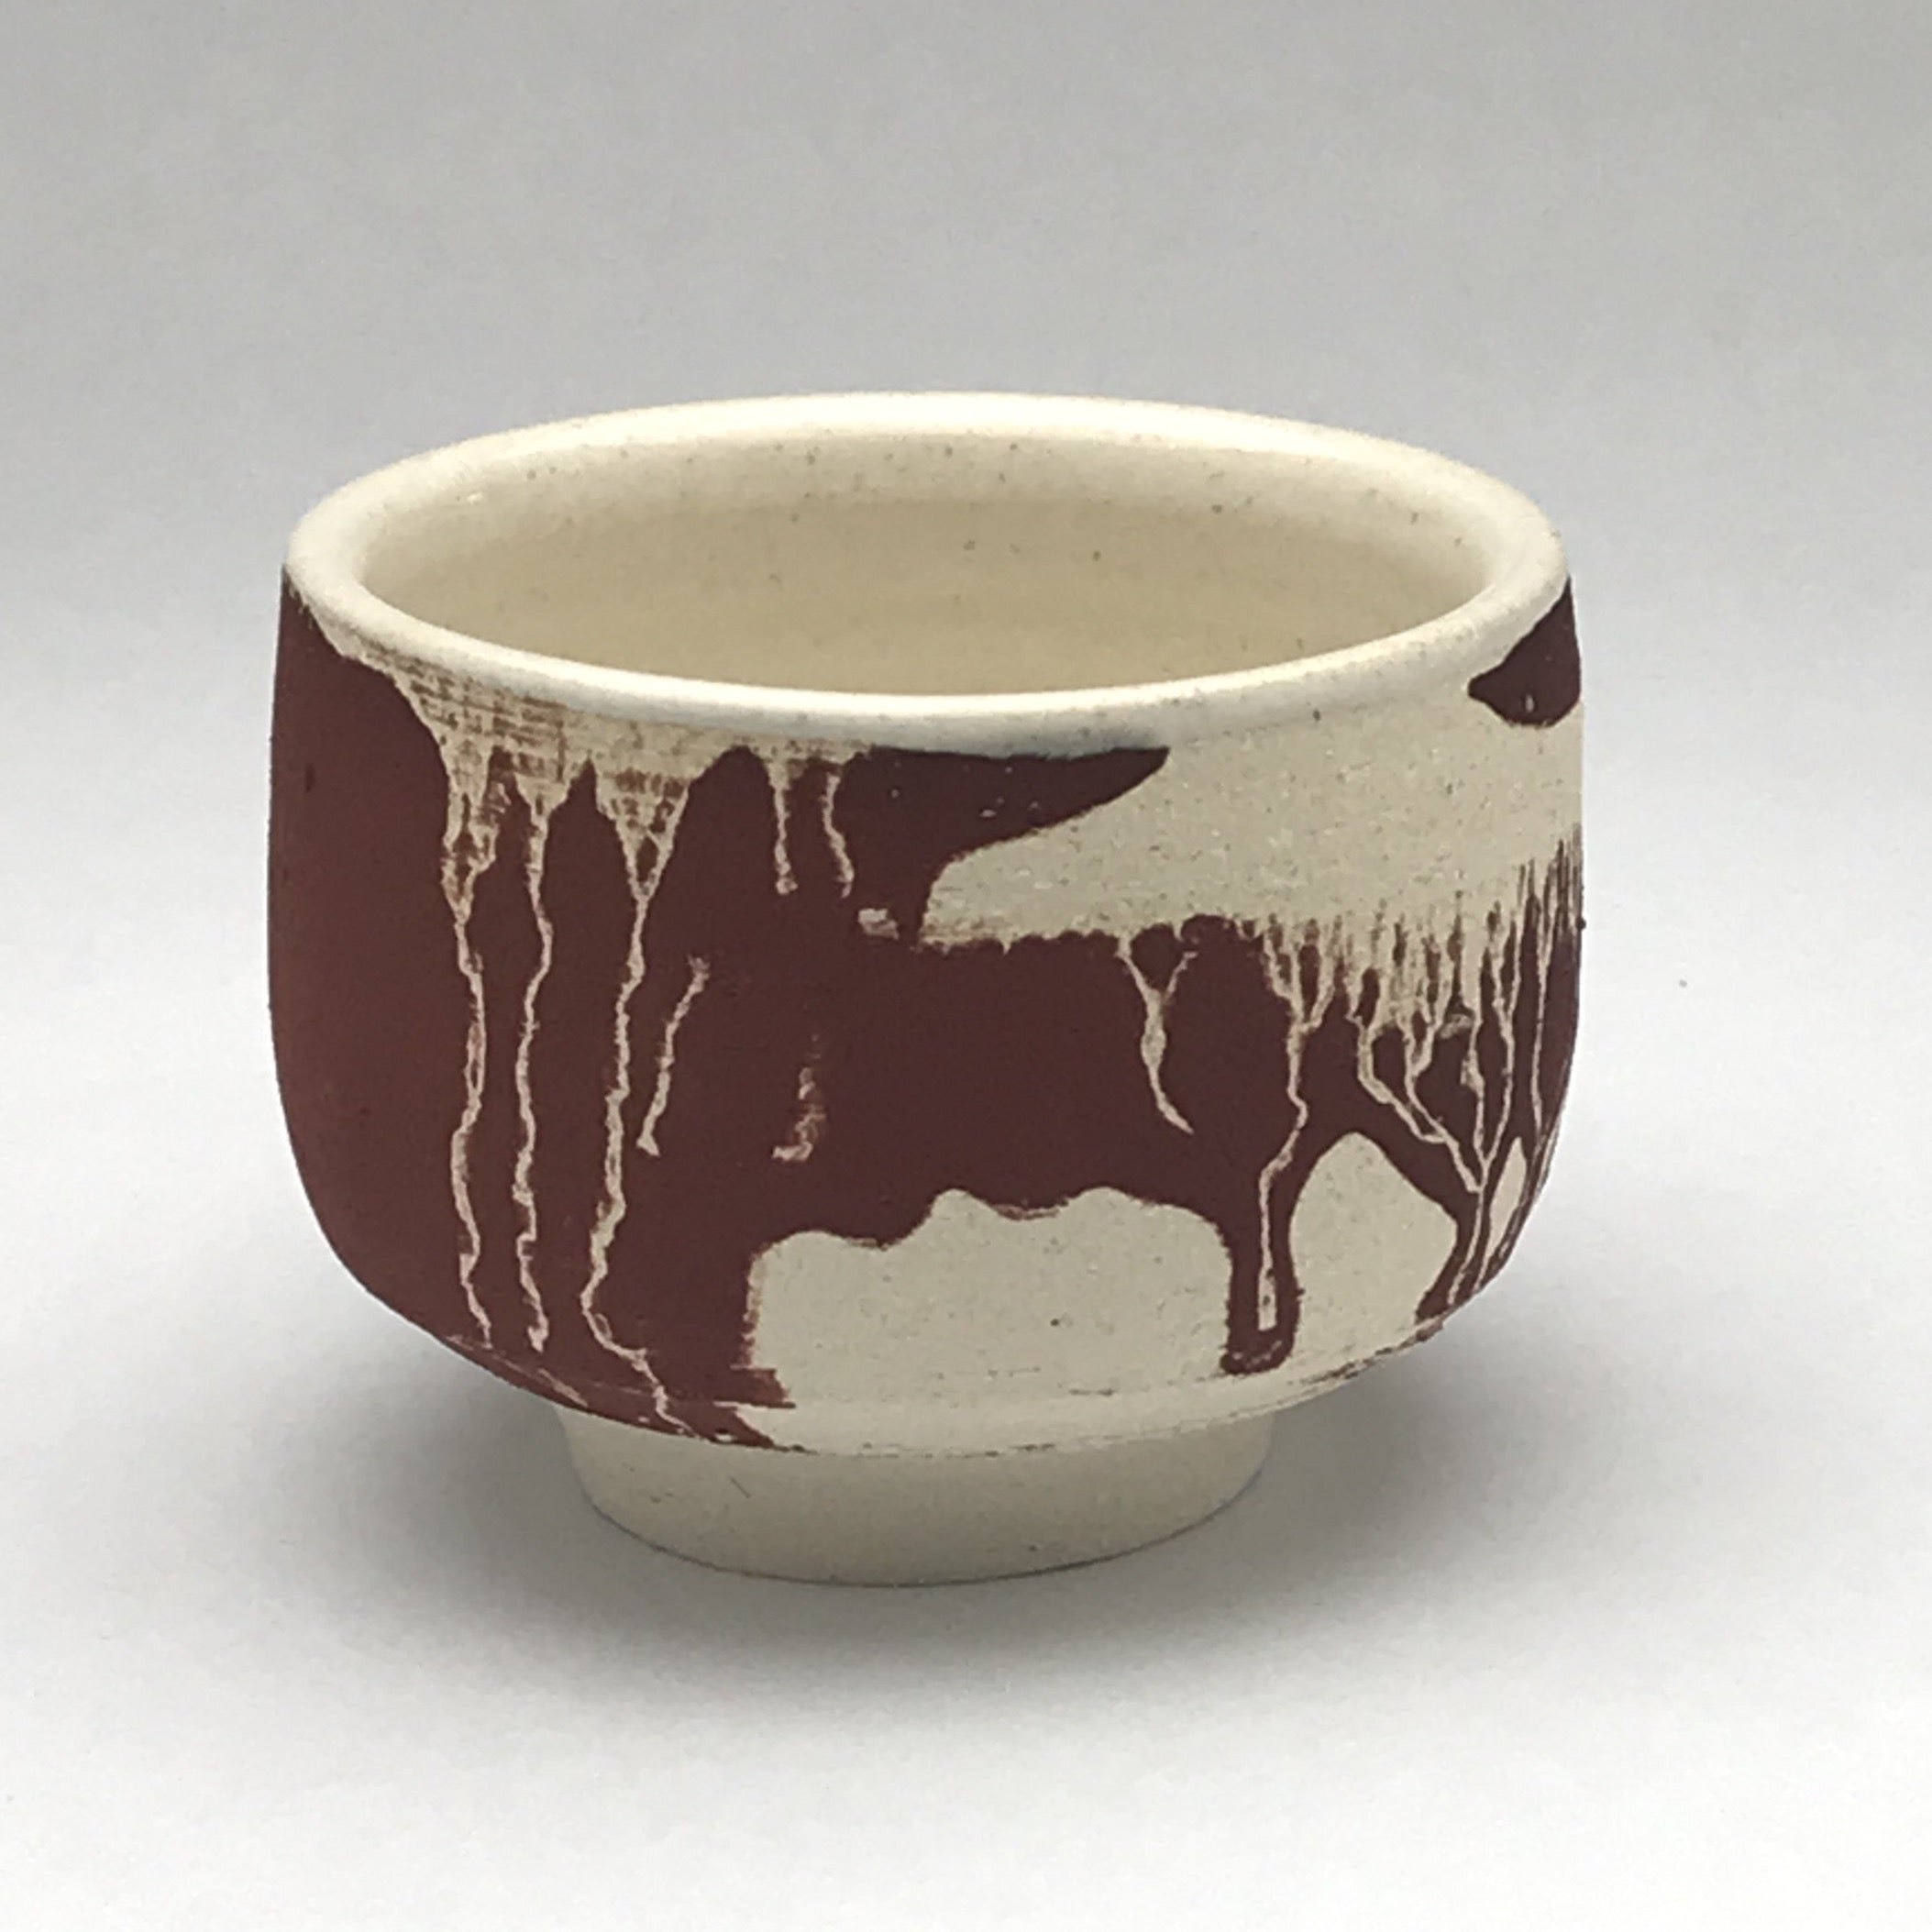 yunomi tea cup whiskey sipper with brown and white drippy design